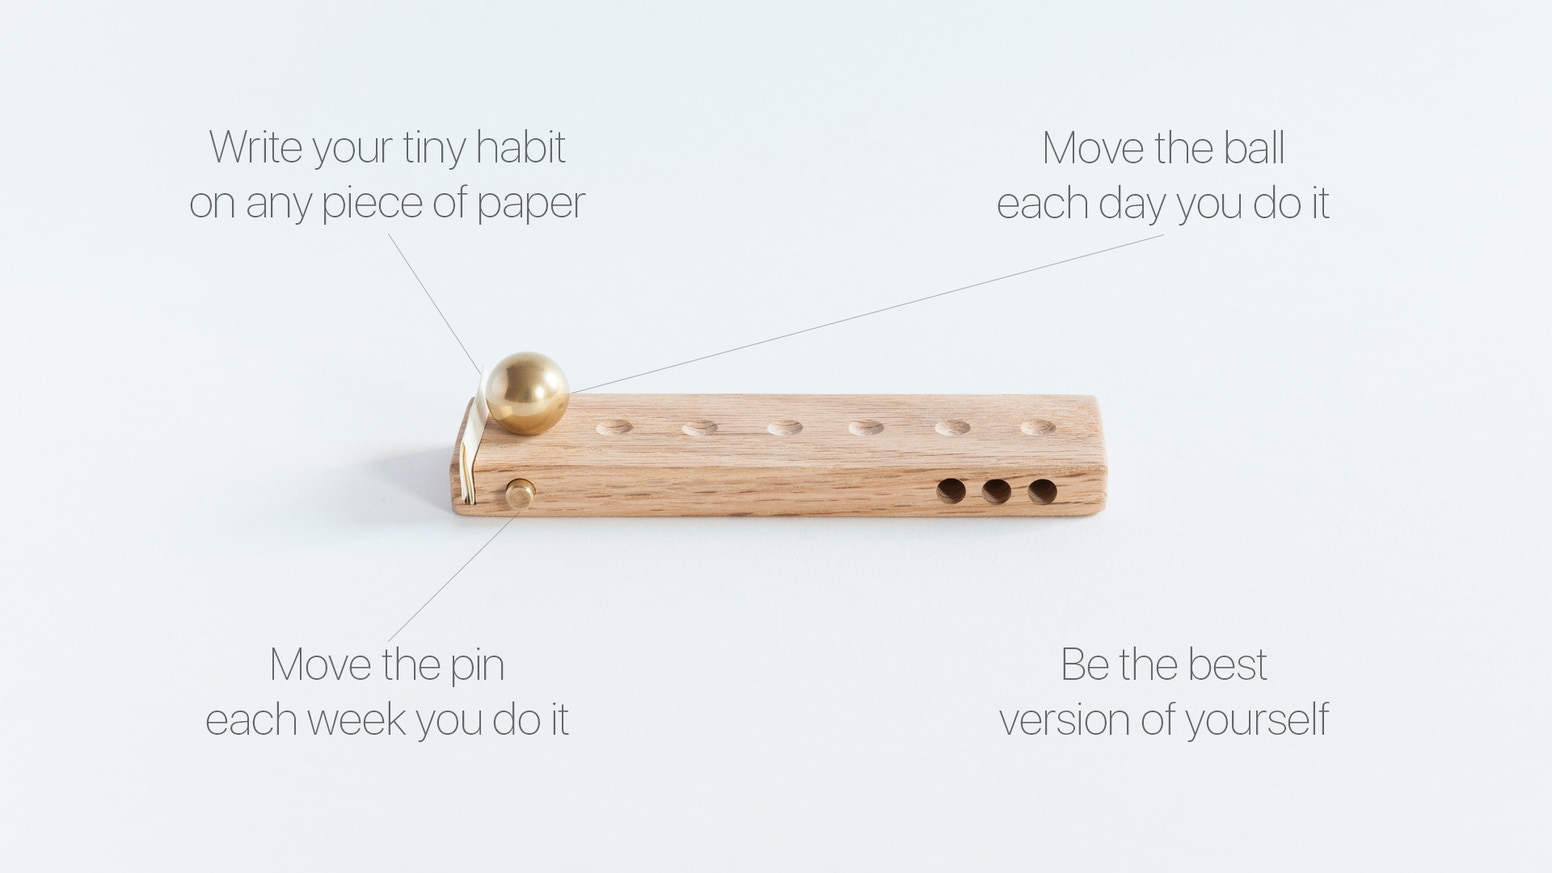 Pick a tiny habit. Track it. Improve. This habit tracker is individually handmade by two brothers in Brooklyn, NY.